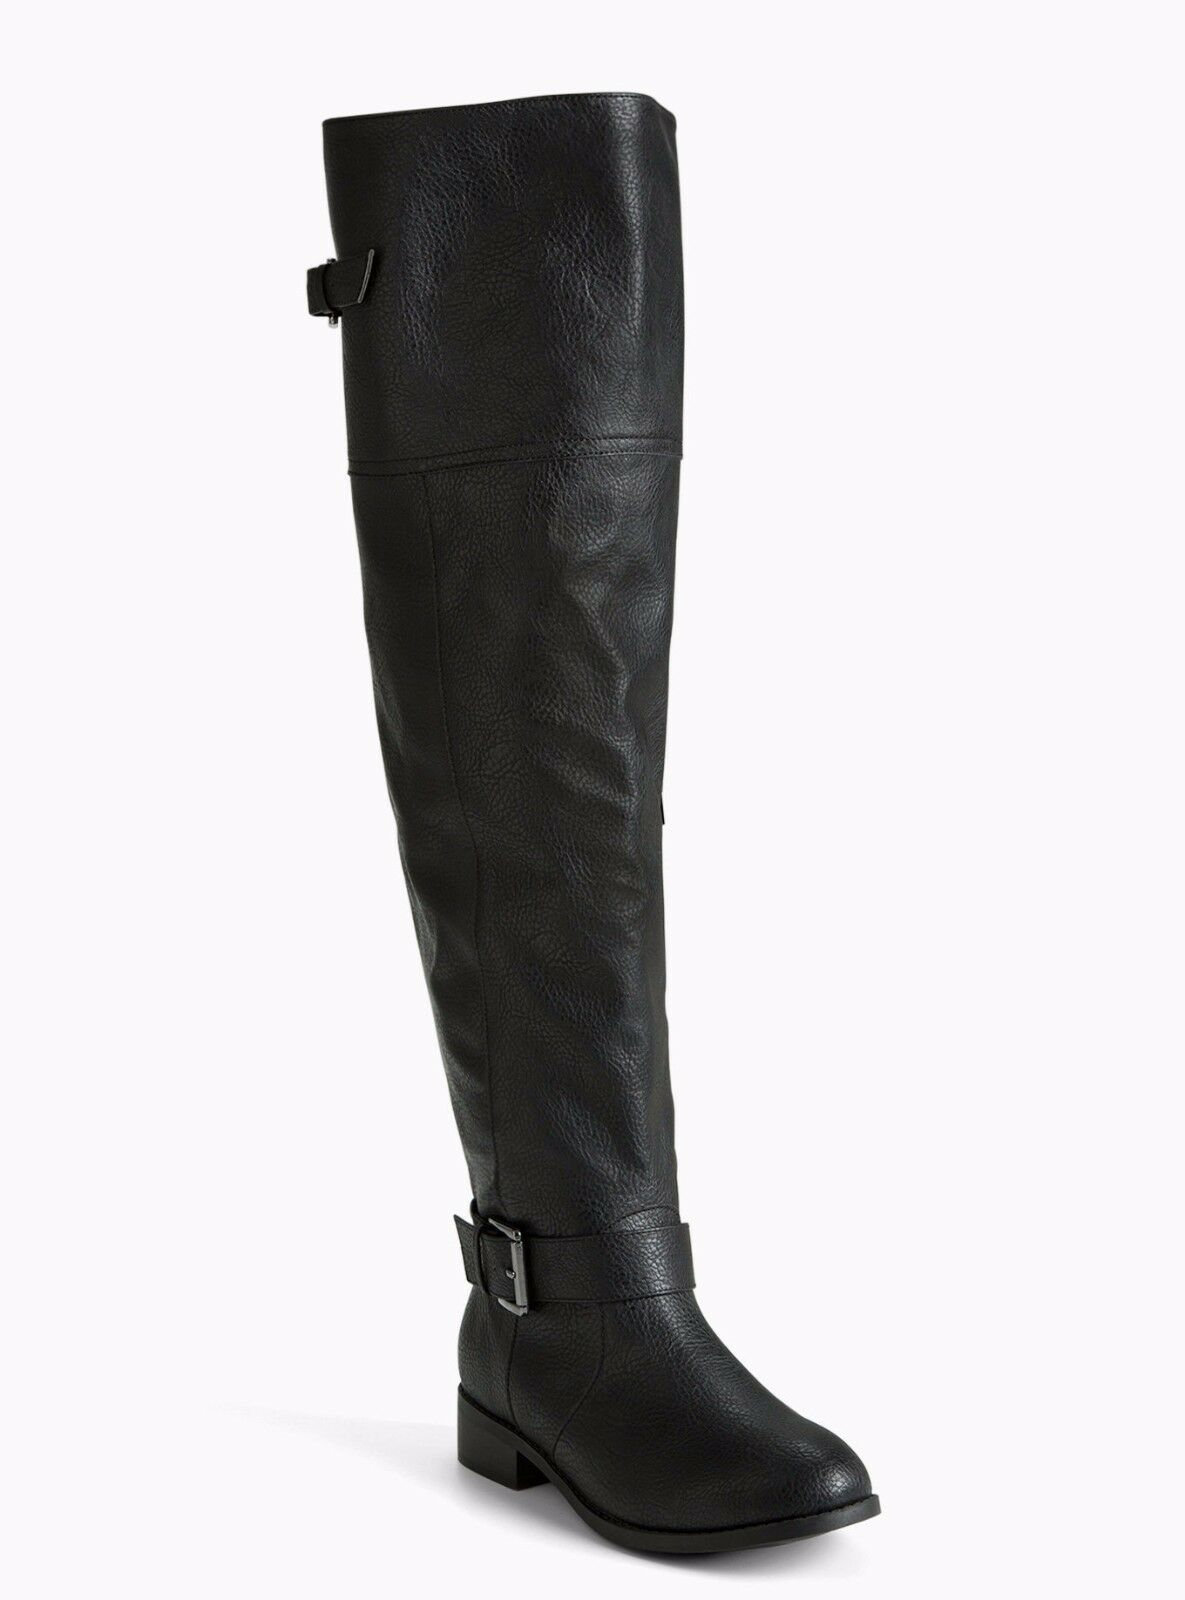 Torrid Faux Leather Over The Knee Boots Wide Width & Wide Calf Black 7